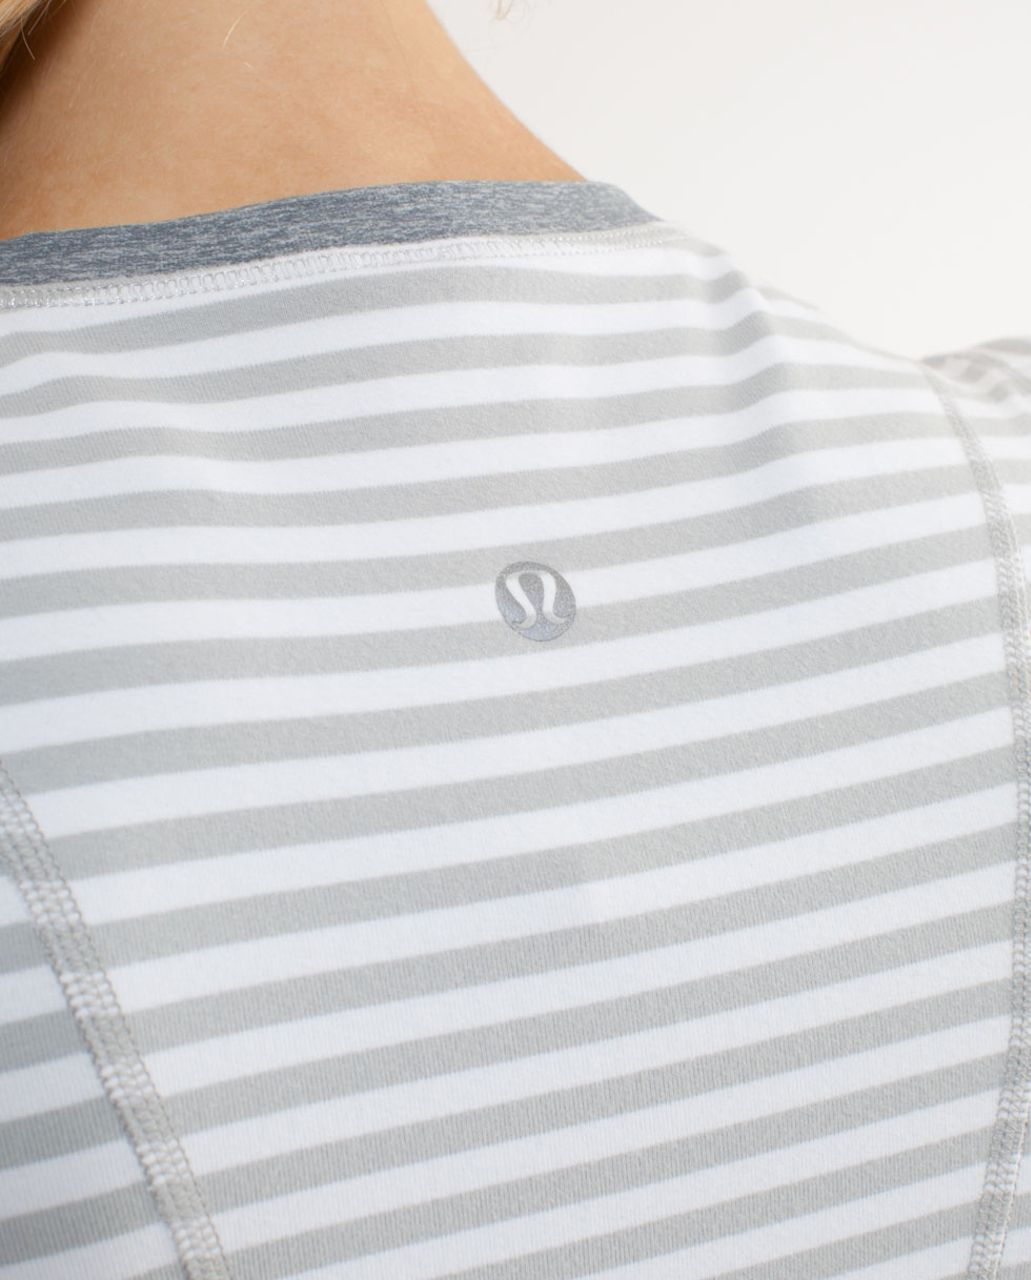 Lululemon Run:  Back On Track Long Sleeve Tech - Silver Spoon White Narrow Bold Multi Stripe /  Heathered Silver Spoon